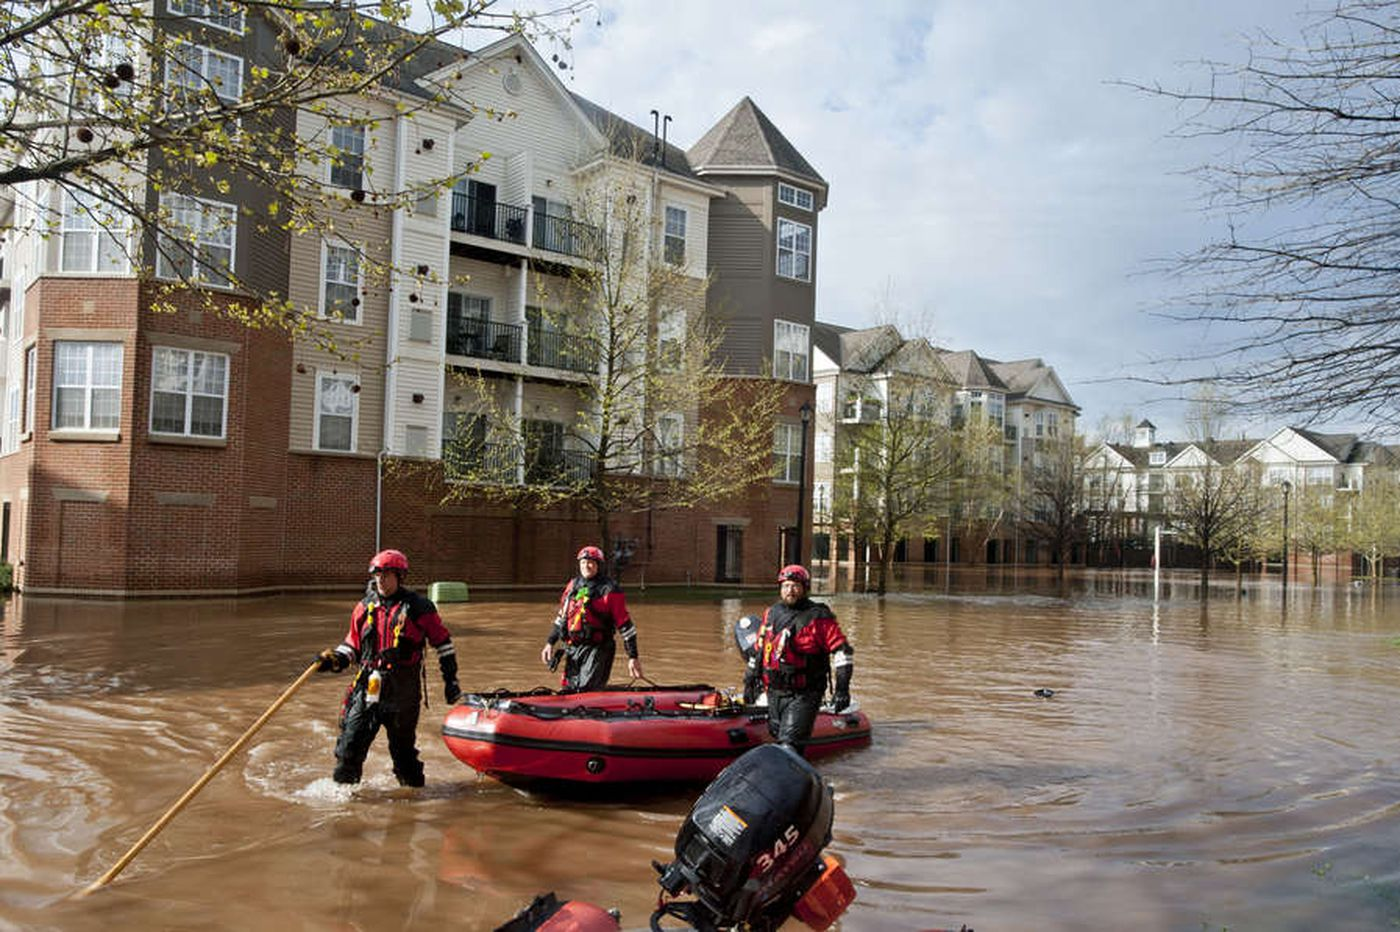 Flood-prone Montco town swamped again